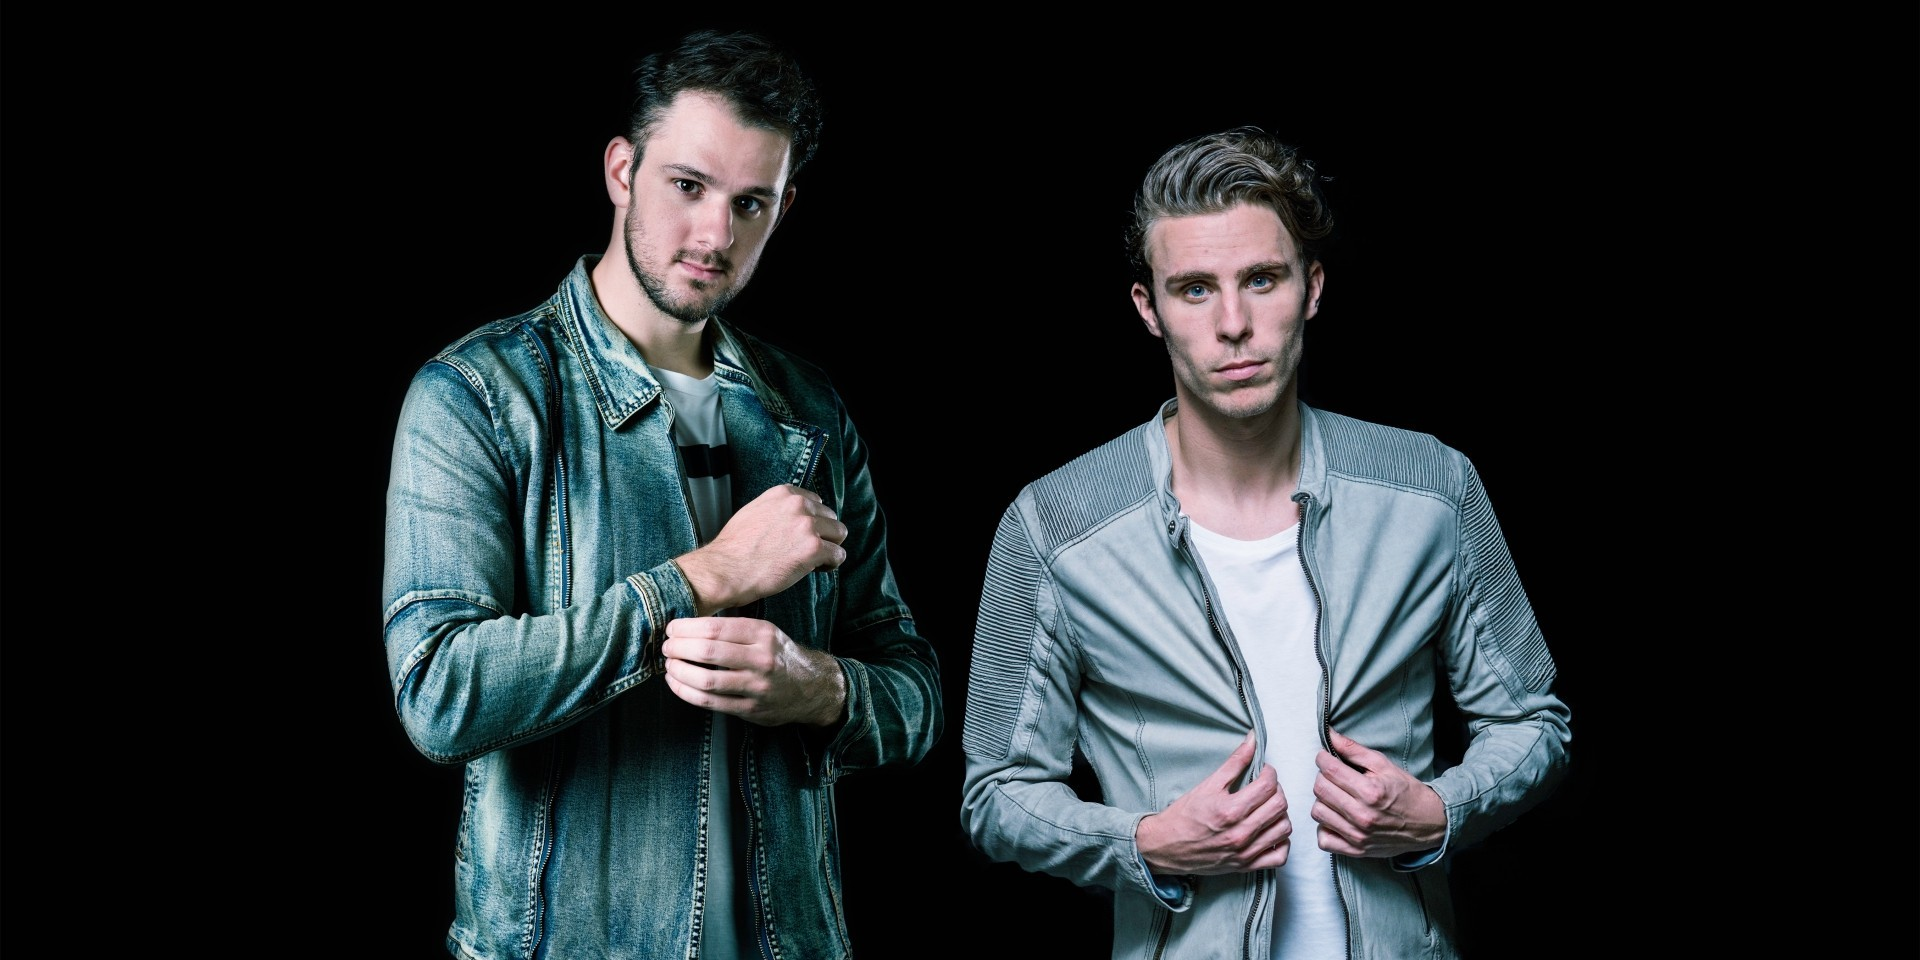 """""""Dance music is in a great place"""": W&W reflects on the potential of the present scene ahead of its ZoukOut 2018 set"""